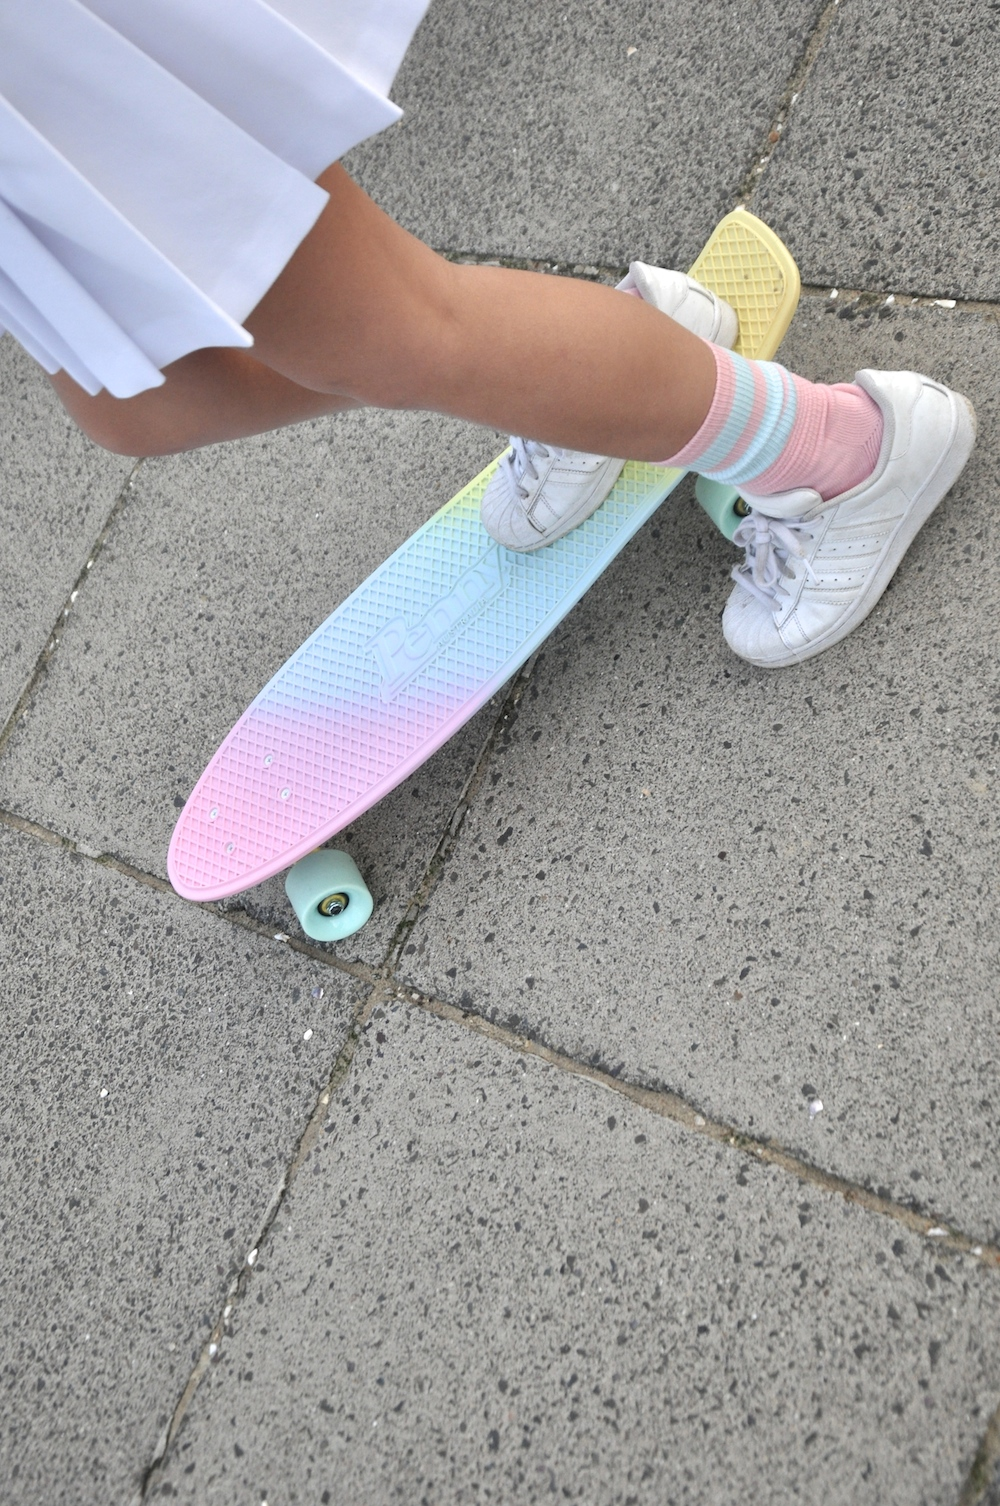 American_apparel_penny_skateboards_sandbanks